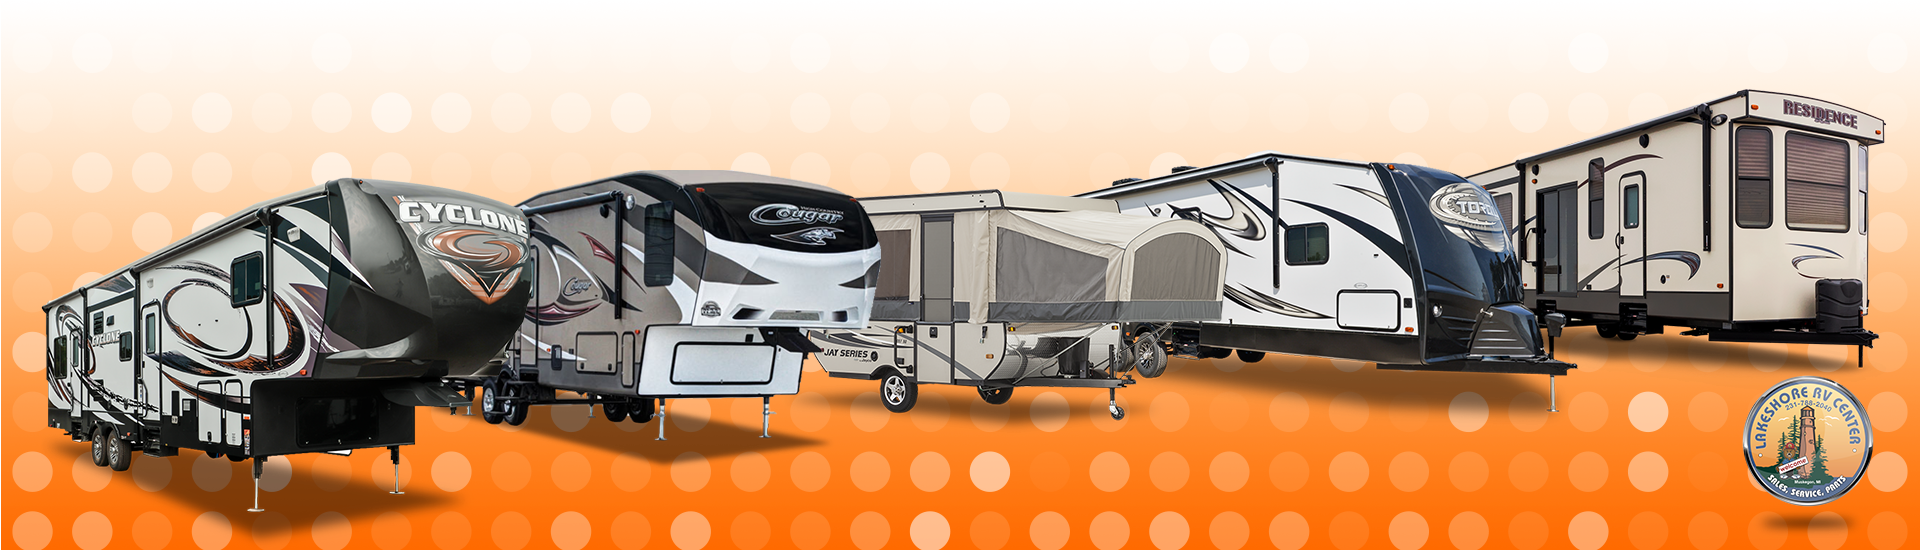 Your RV Adventure Starts Here